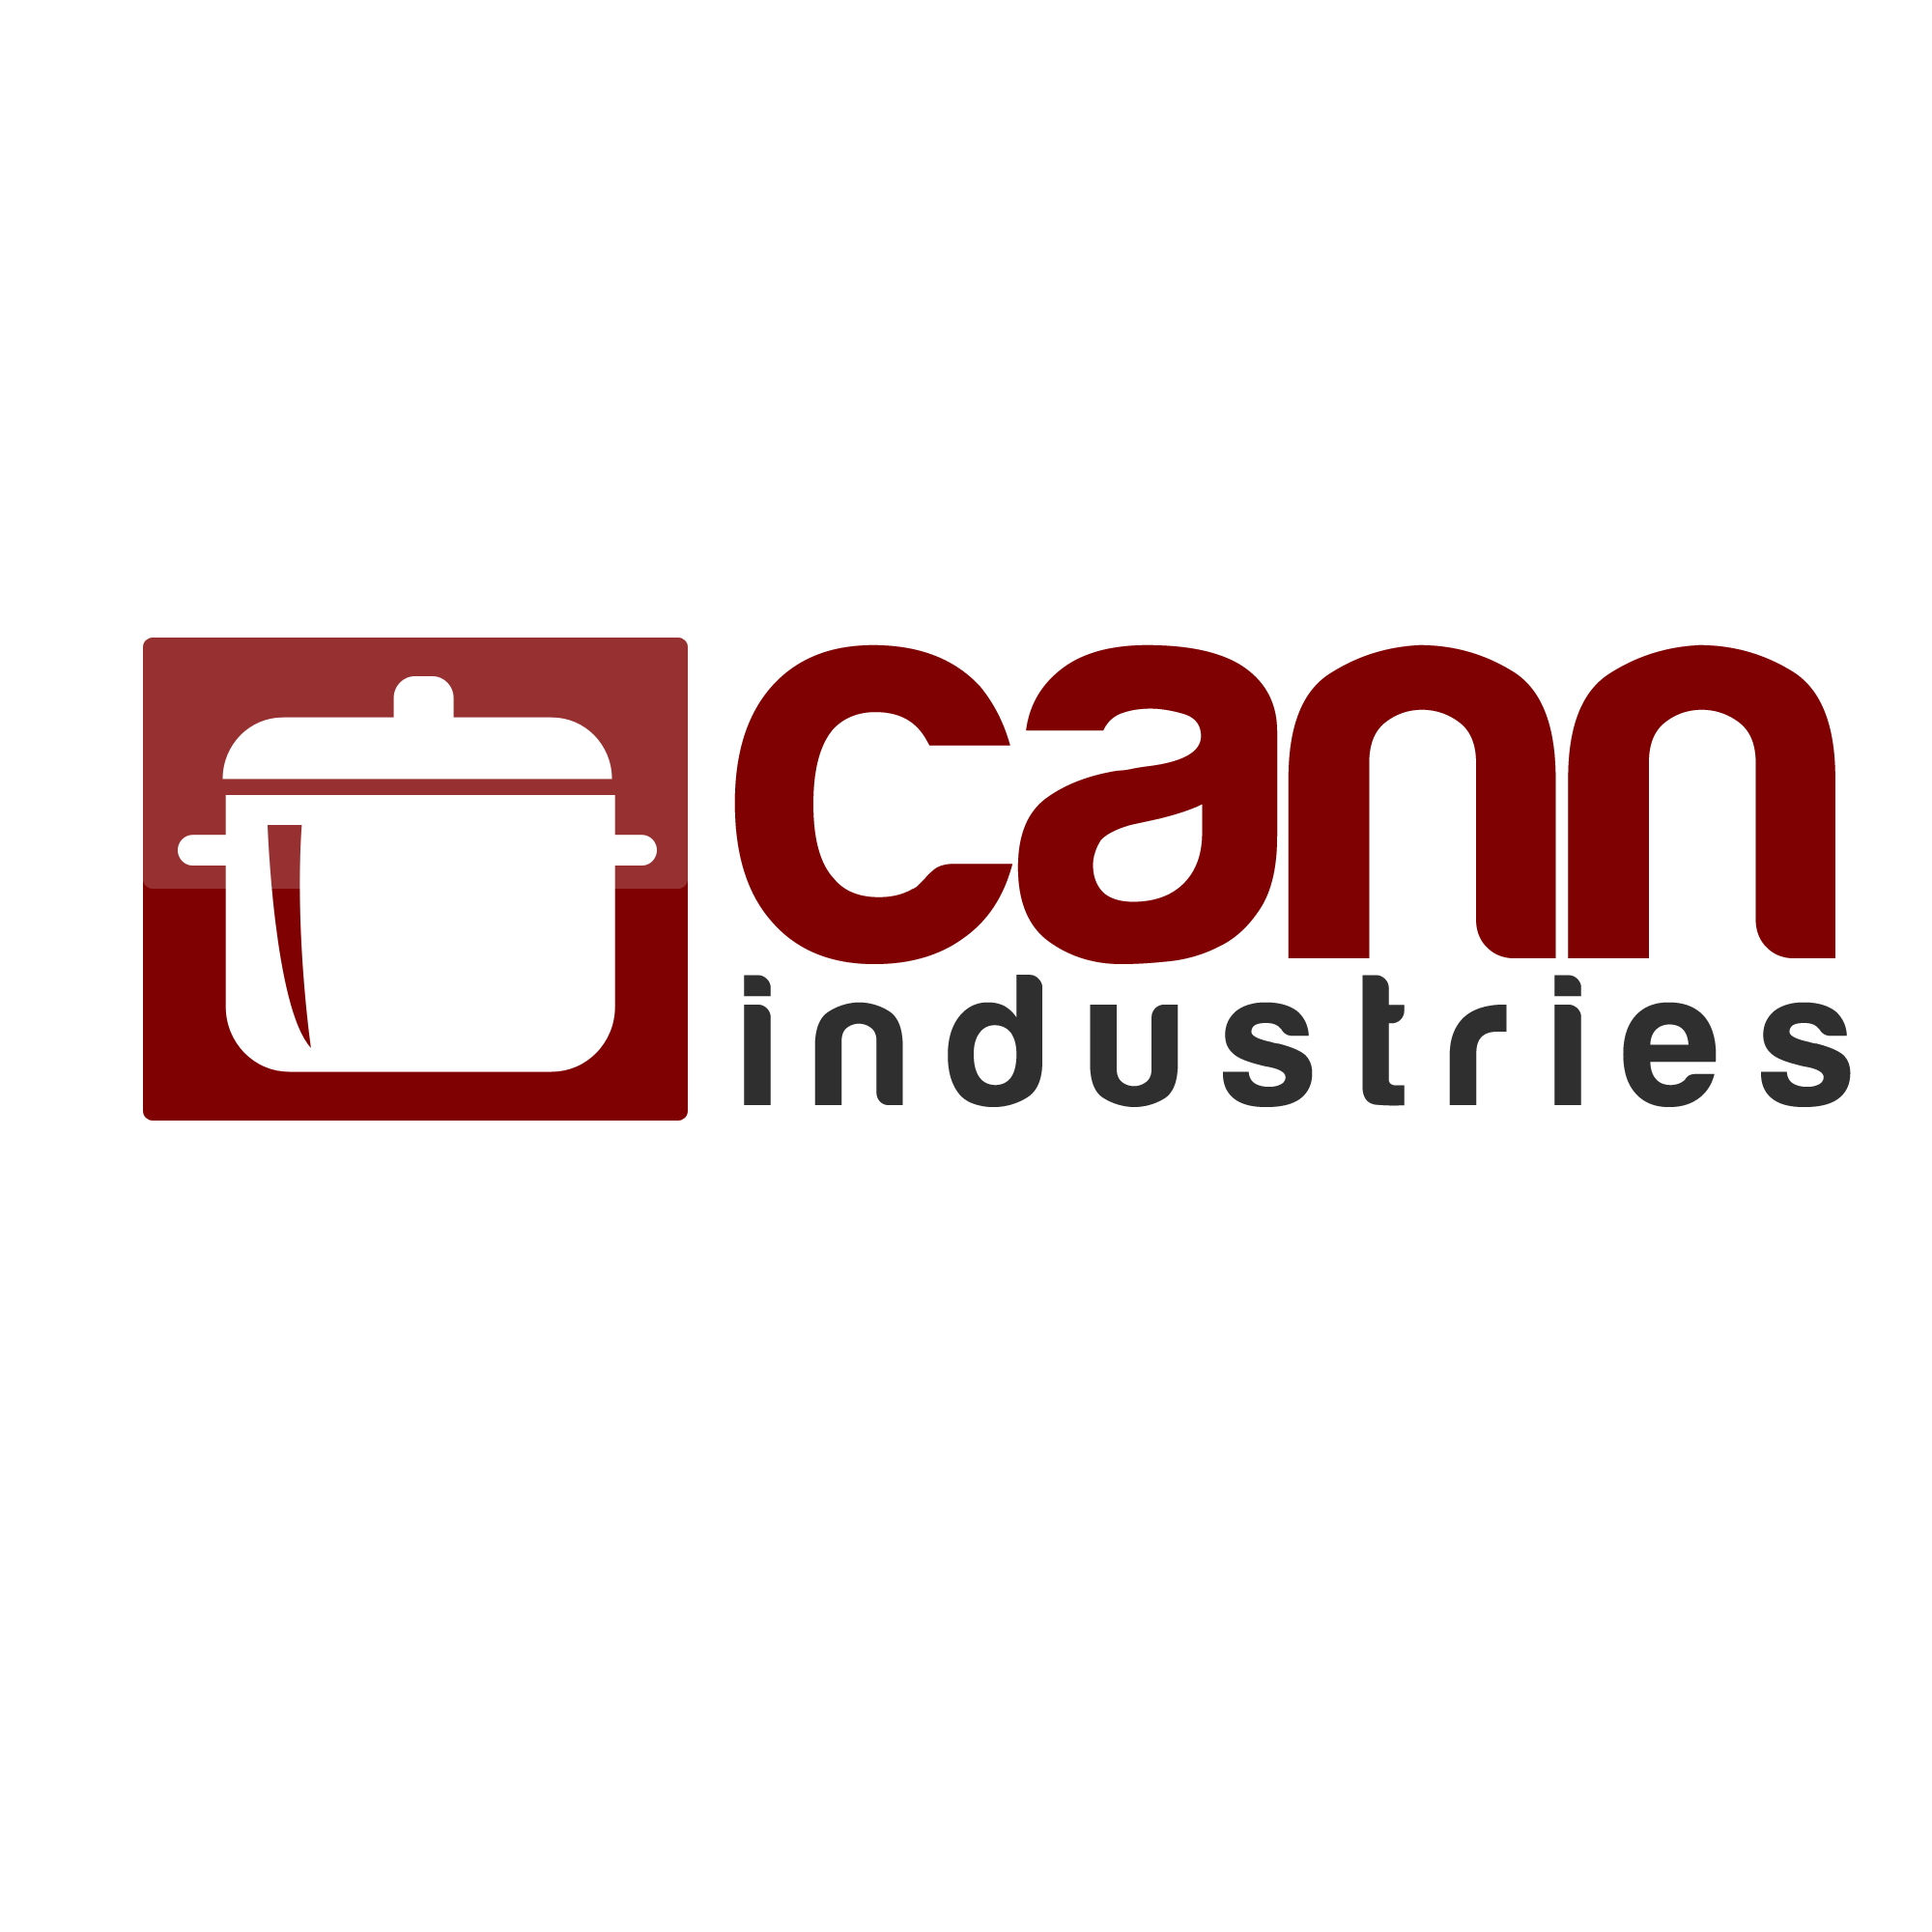 CannLogo (2).png